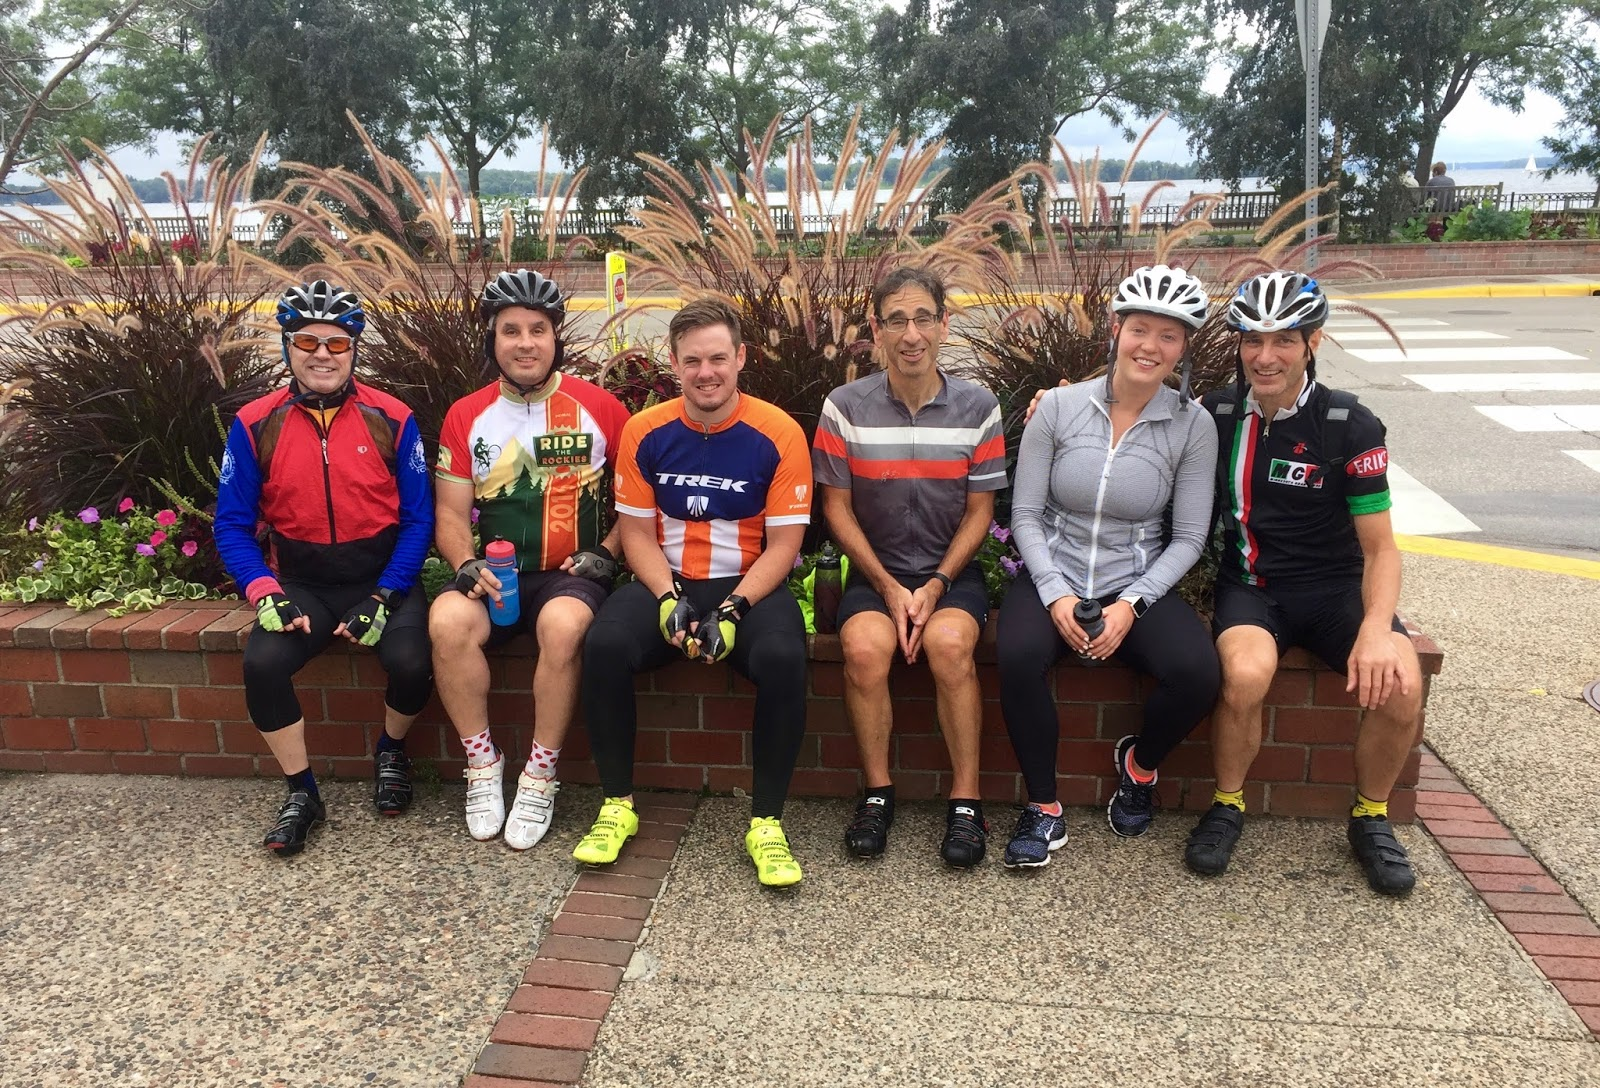 Bicycling Group 103